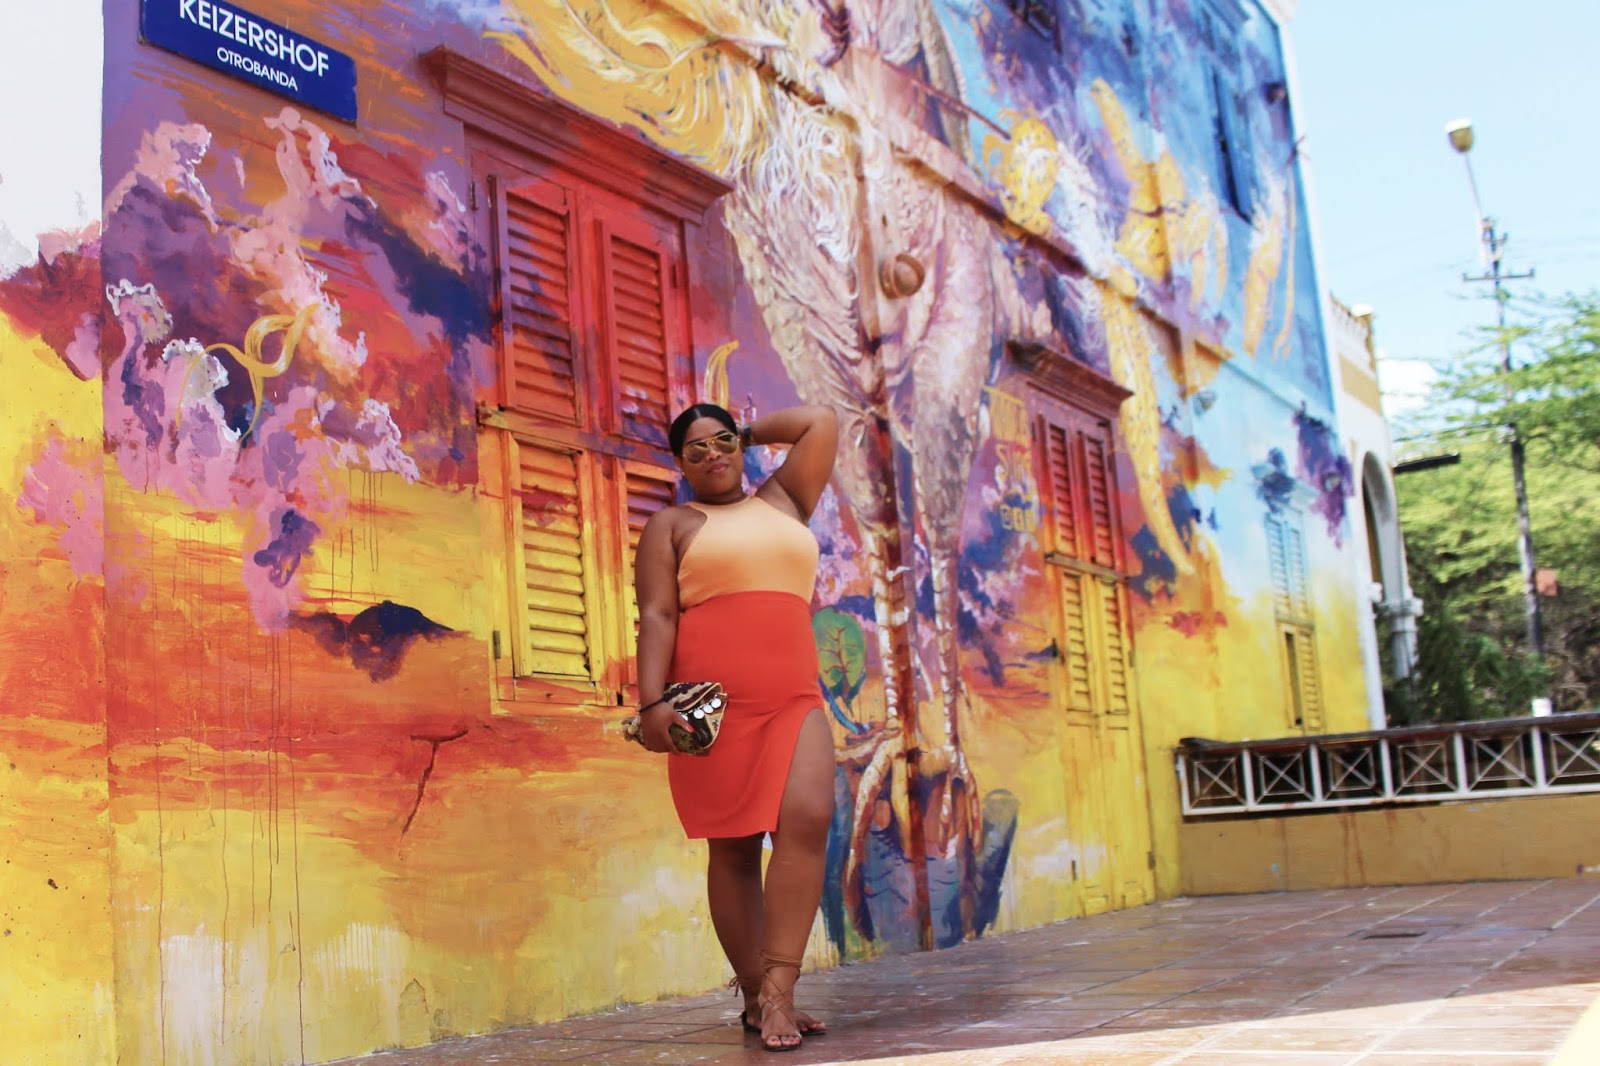 francis sling, sunu, curacao, ydk, mural, art, district, downtown, otrobanda, fashionblogger, travel blogger